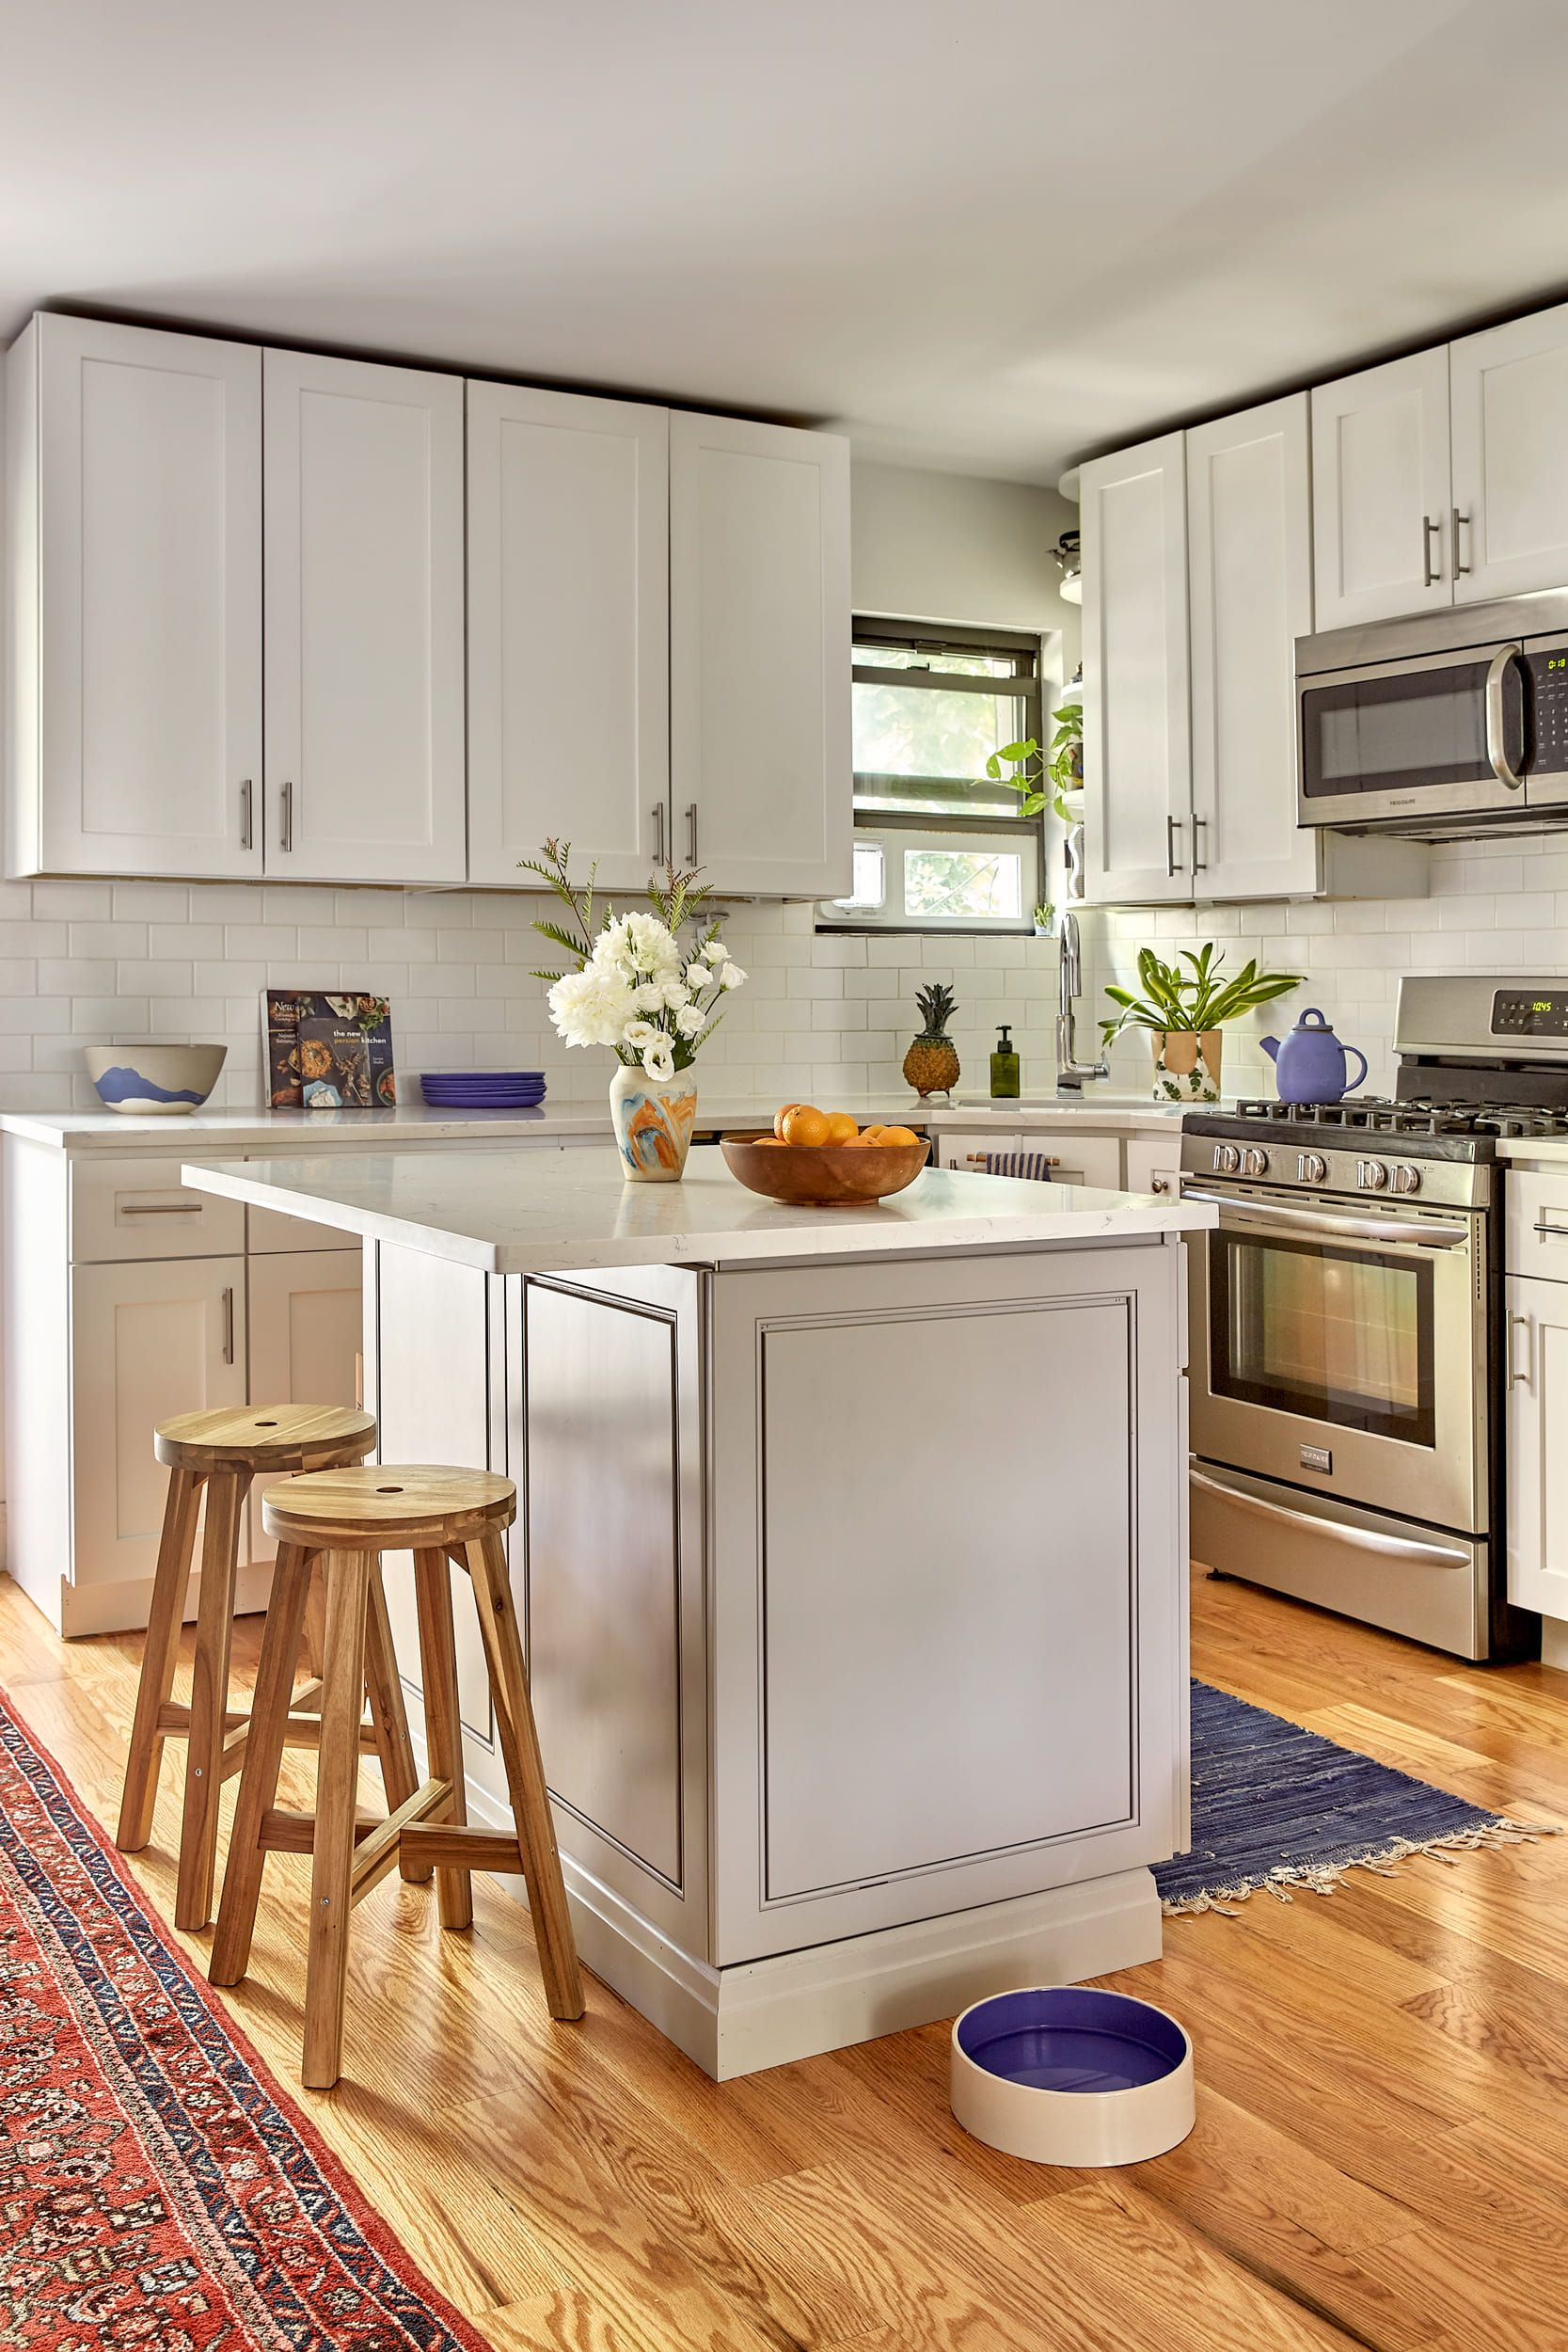 Small Home Renovations For Best Resale Value Small Apartment Kitchen Island Small Apartment Kitchen Apartment Kitchen Island